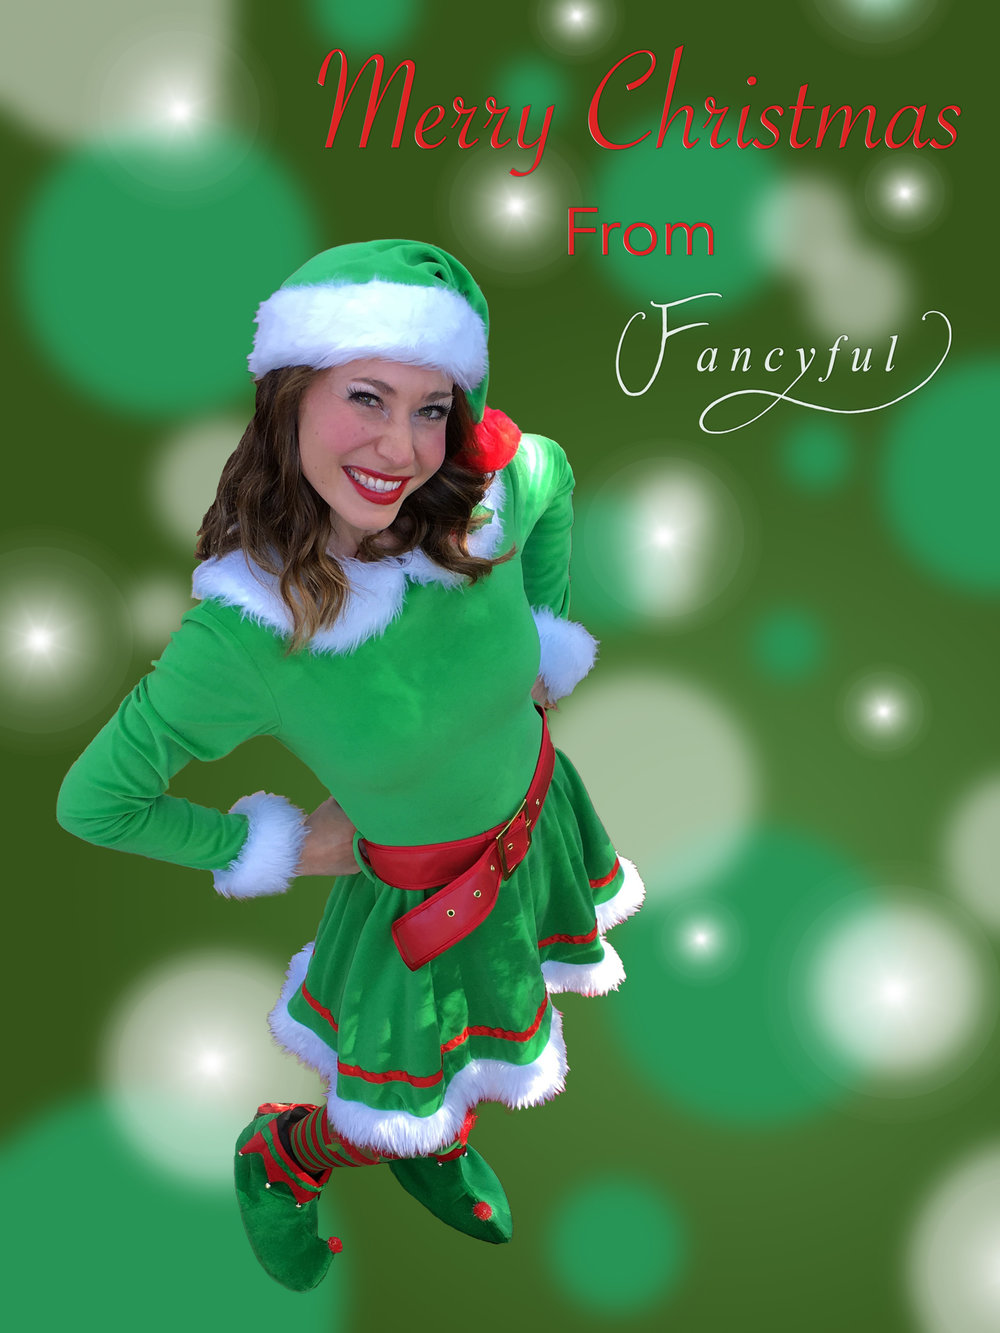 - Includes:-A visit from Elf-ette